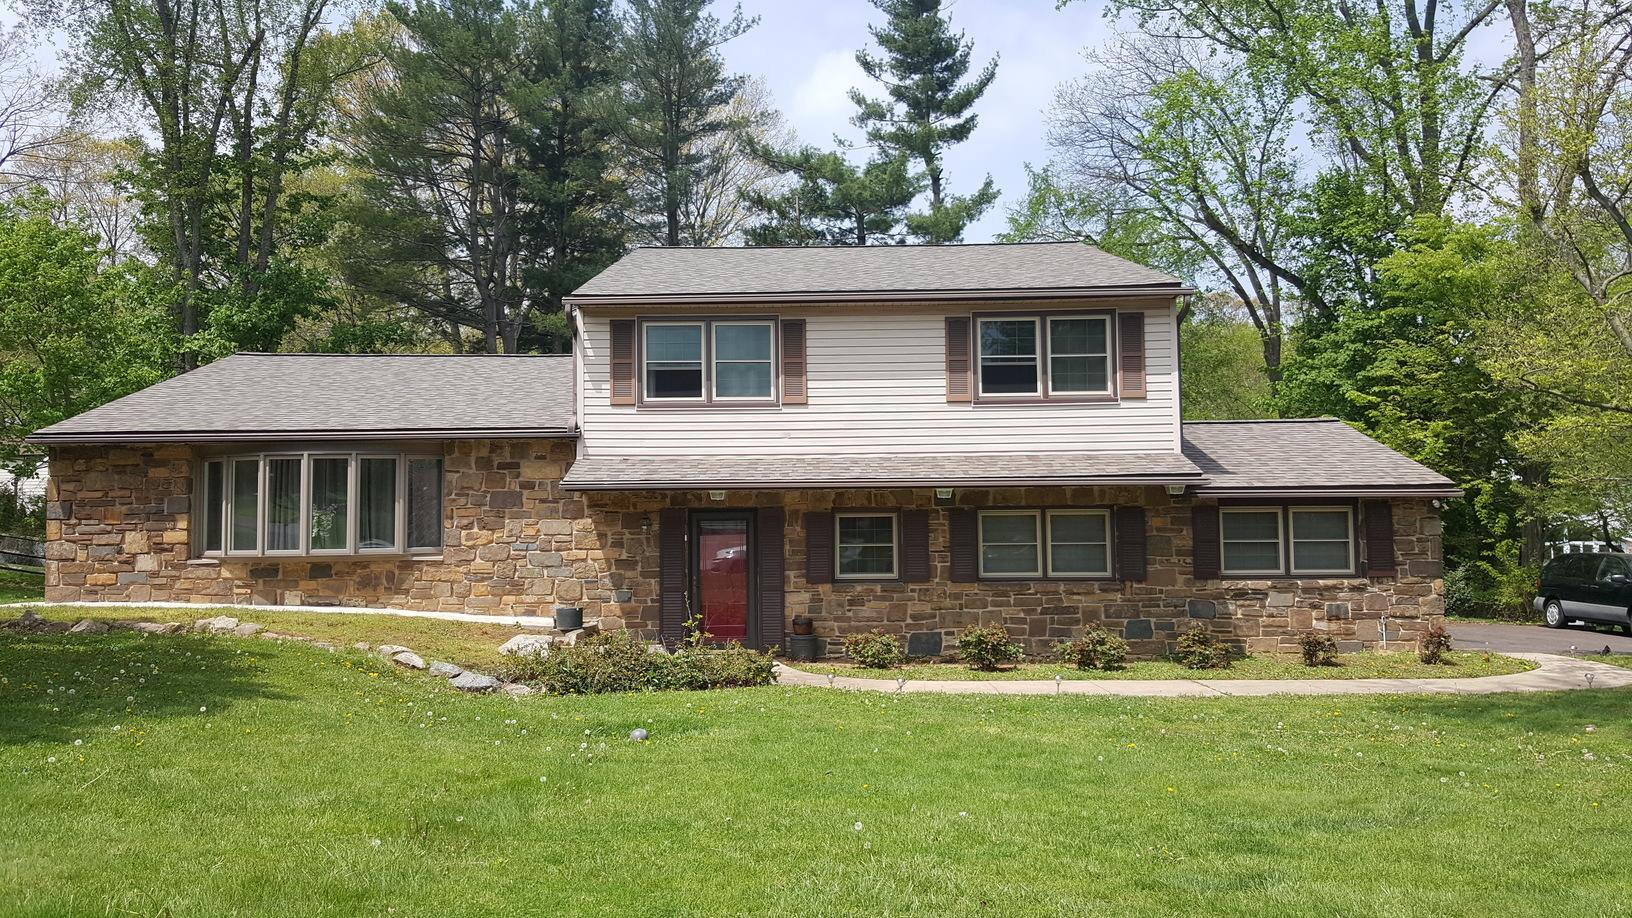 Roof Replacement in Huntingdon Valley, PA - After Photo